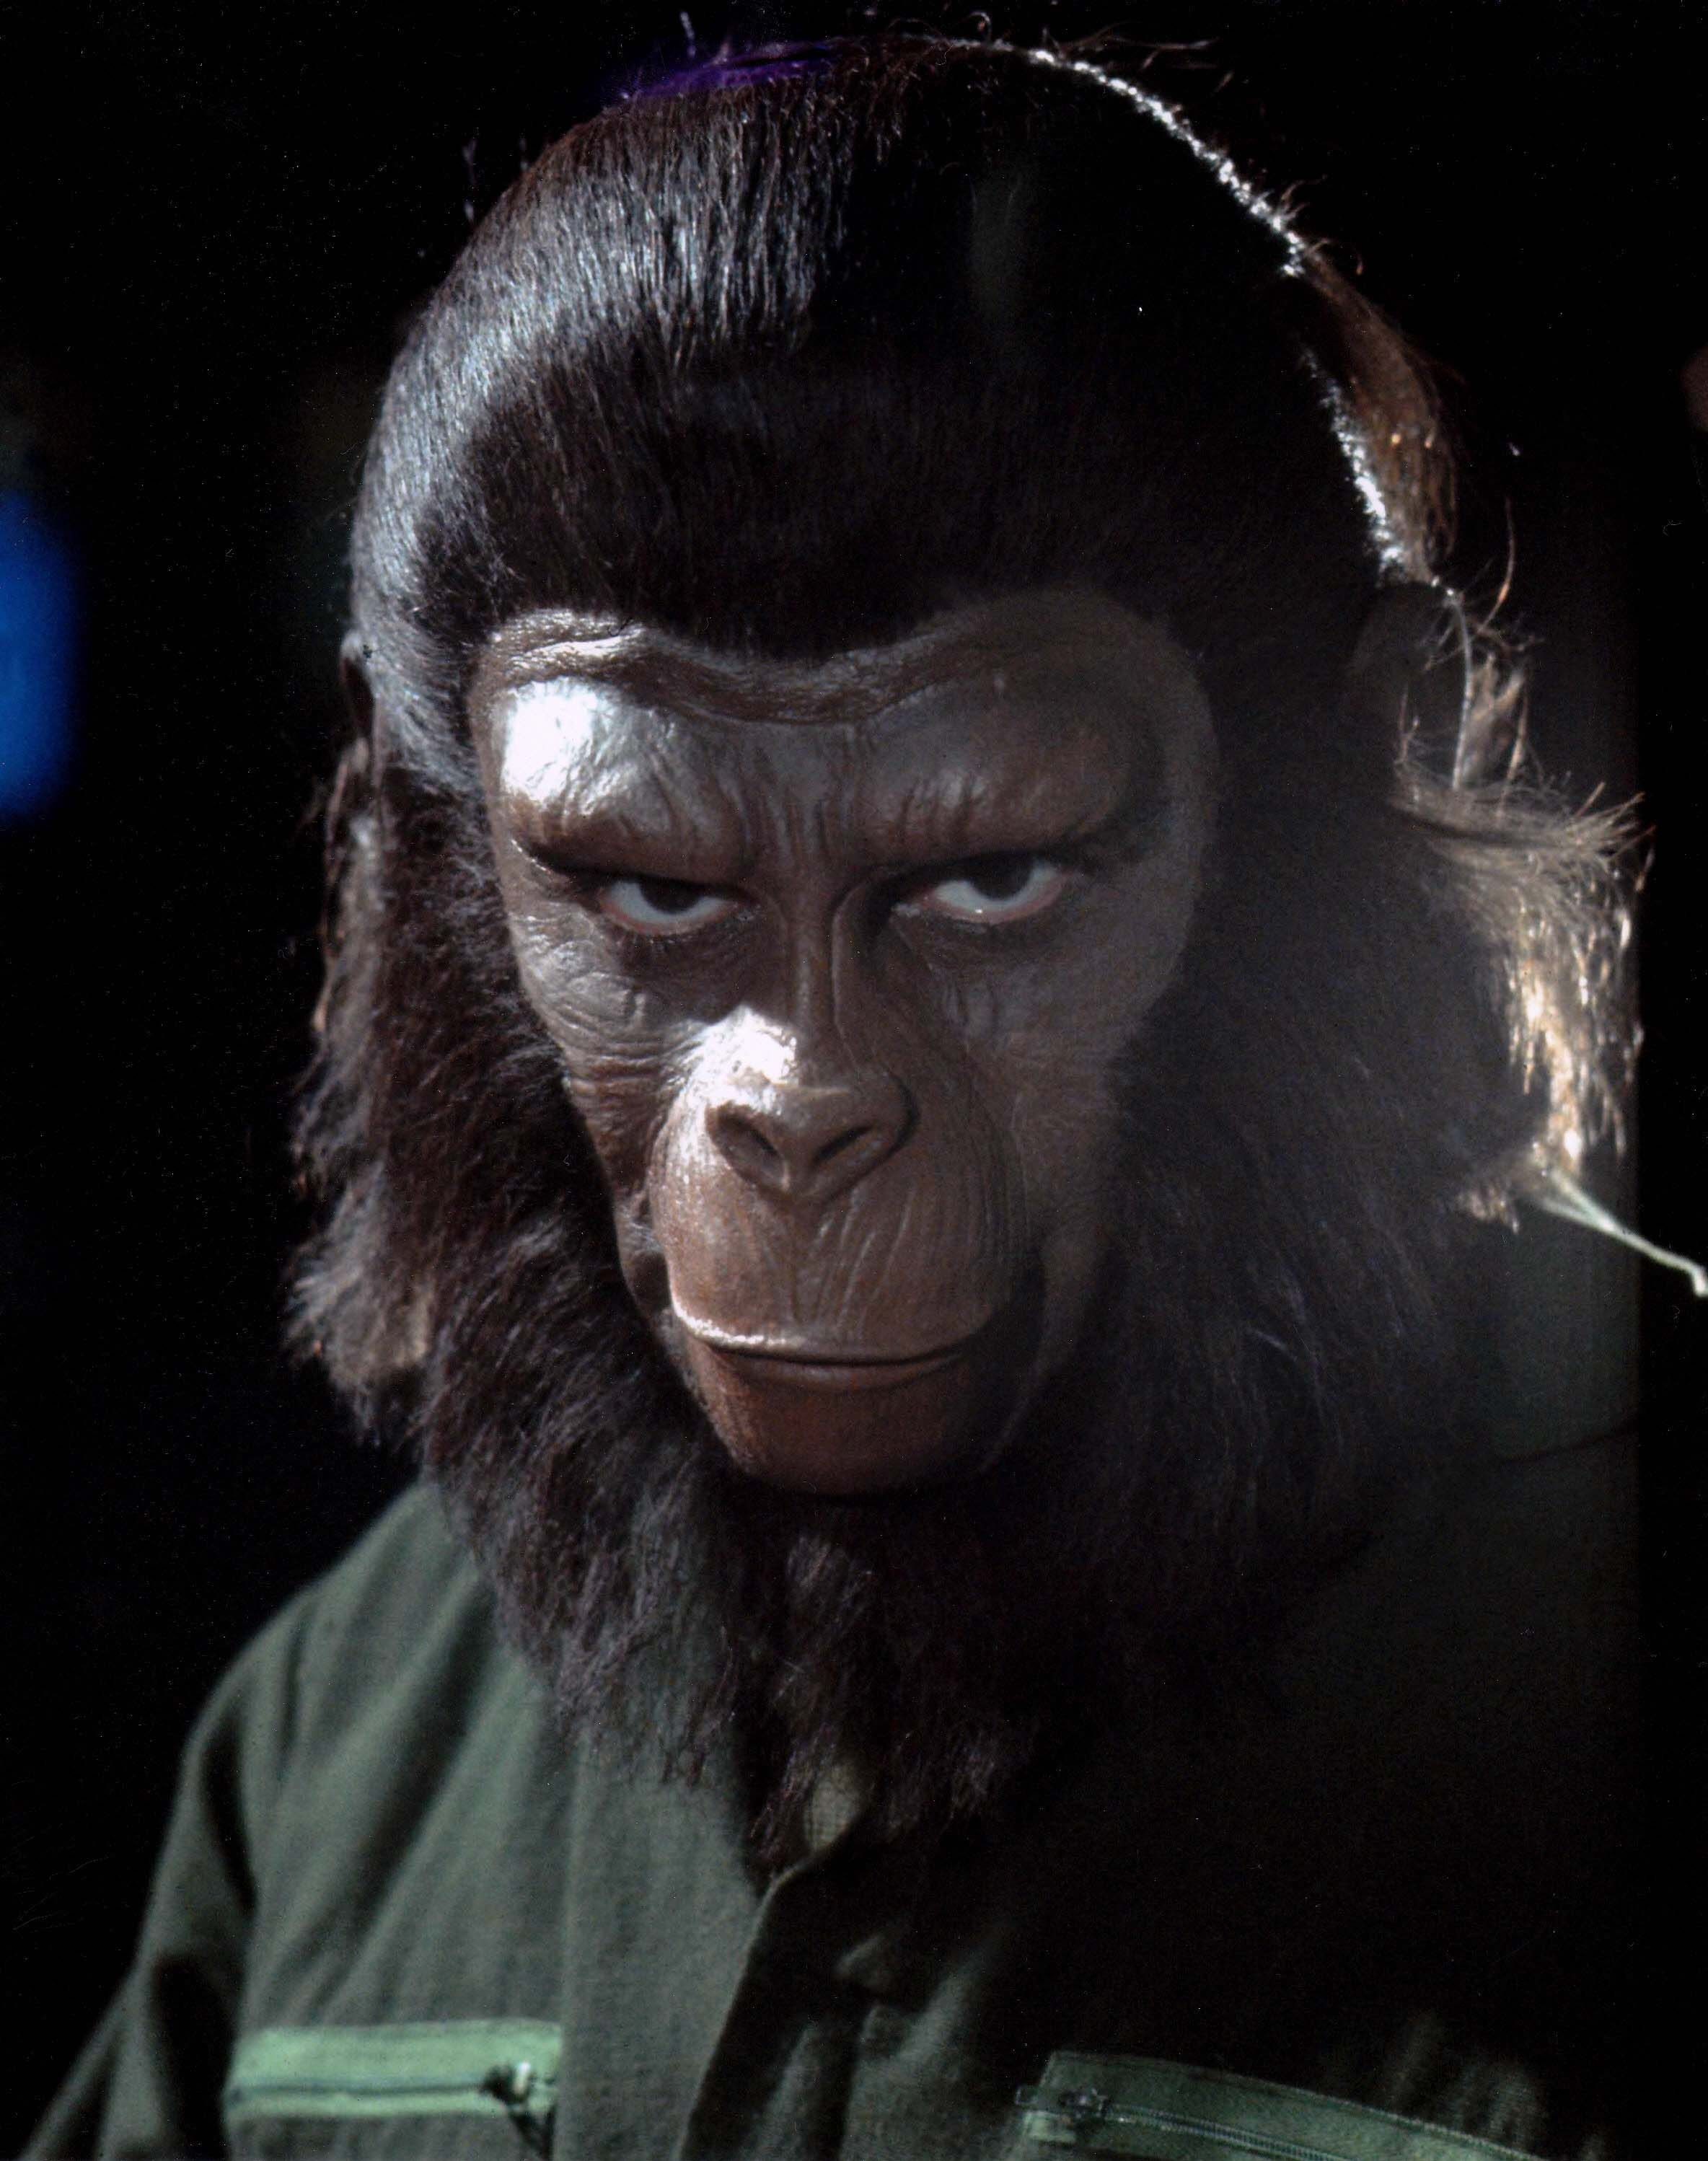 ¿Cuál era el nombre original de César (Escape from the Planet of the Apes)?